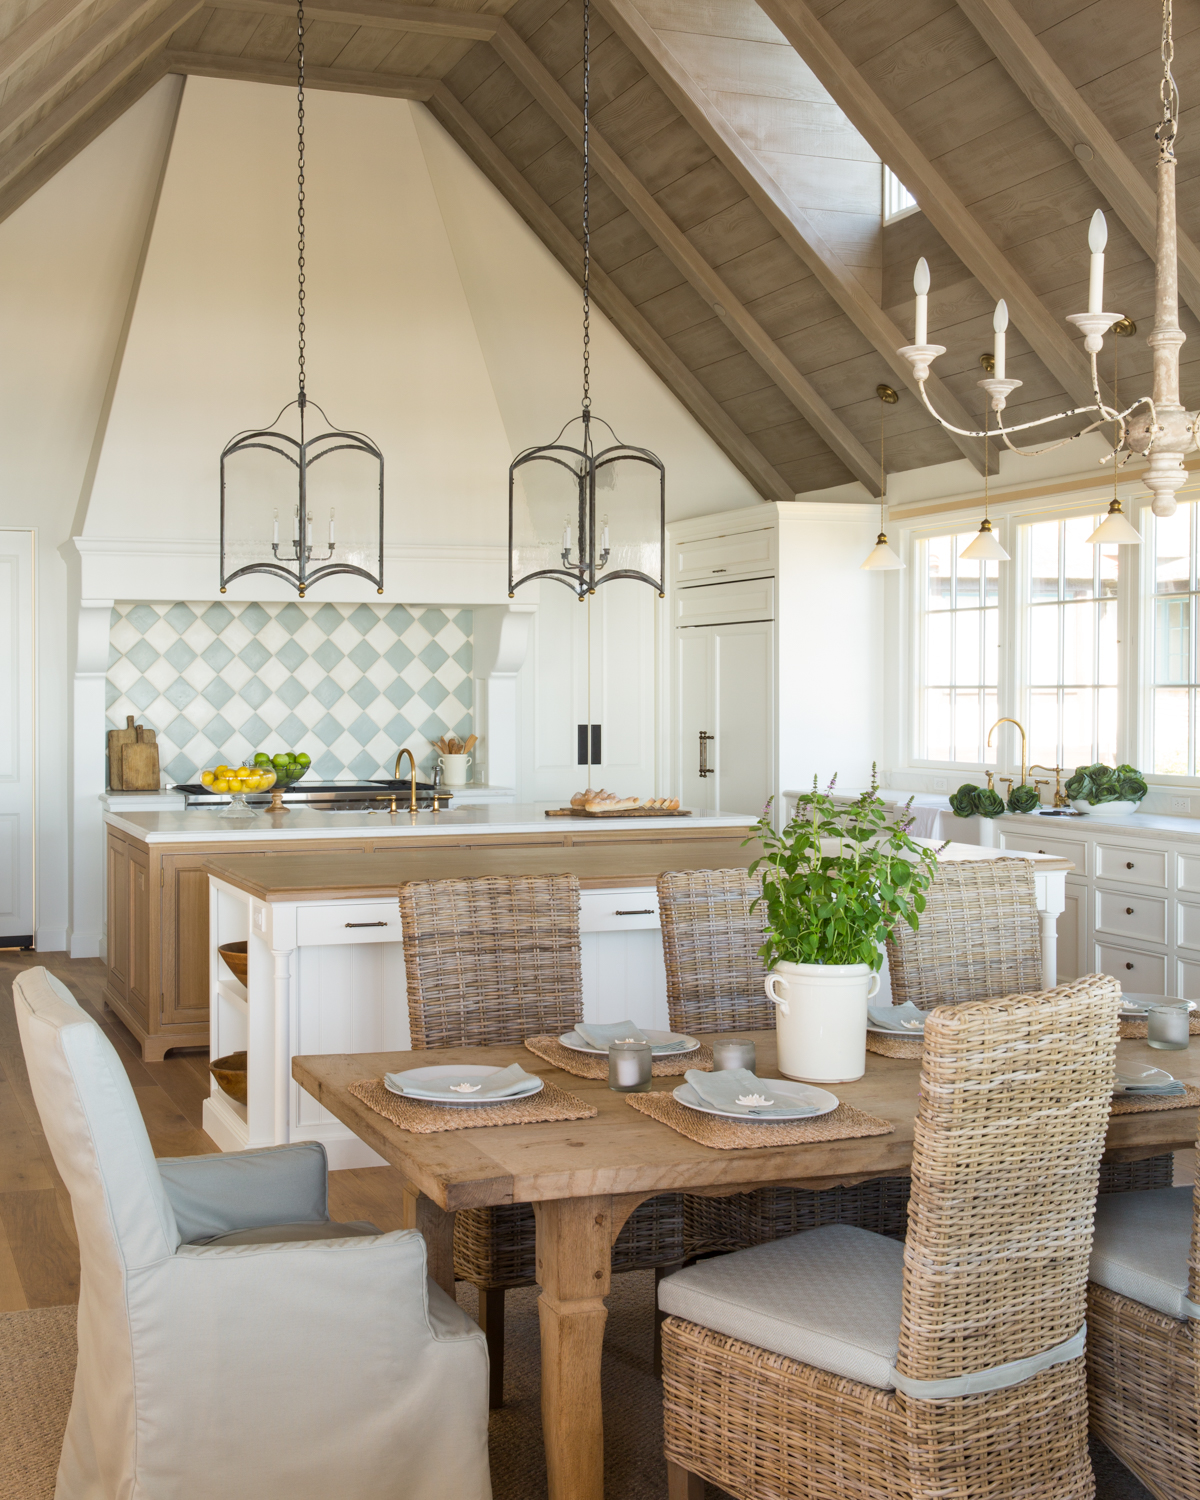 Stunning French Normandy Style Beach House Tour - Hello Lovely